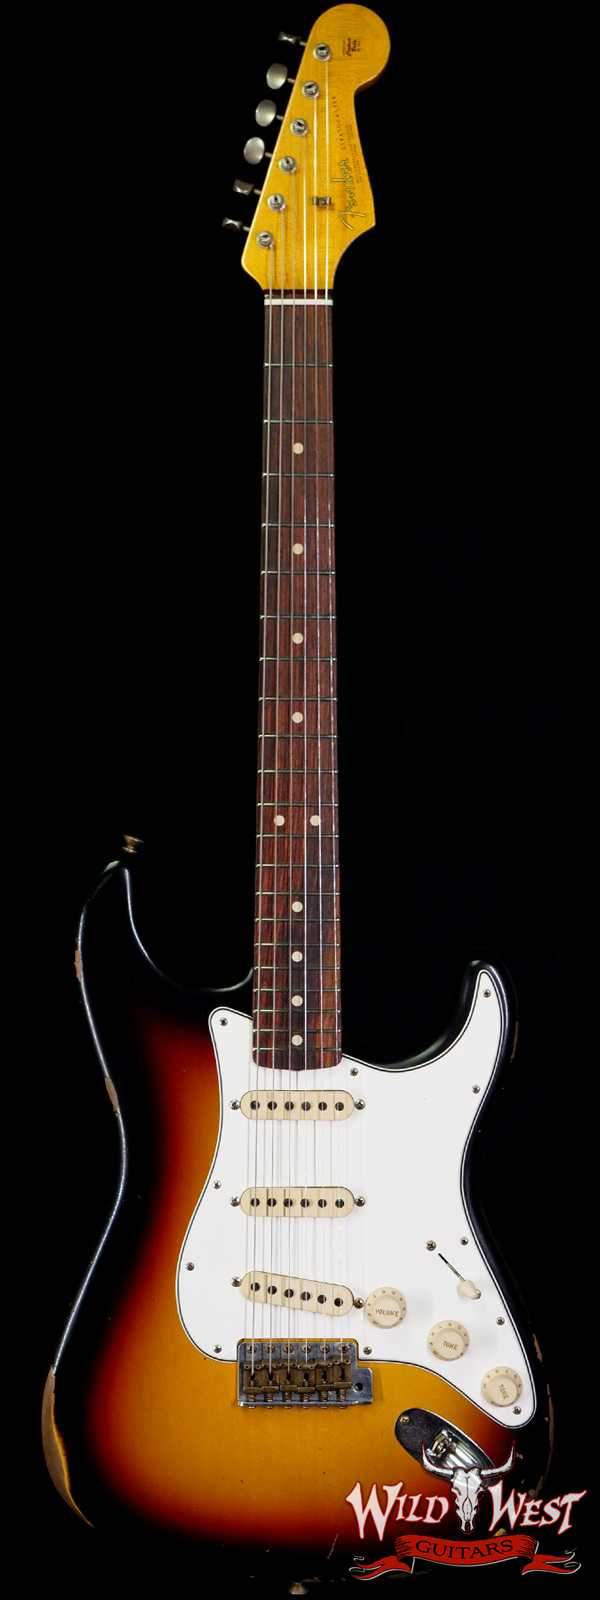 Fender Custom Shop 1963 Stratocaster Relic AAA Rosewood Board with Quartersawn Maple Neck 3 Tone Sunburst